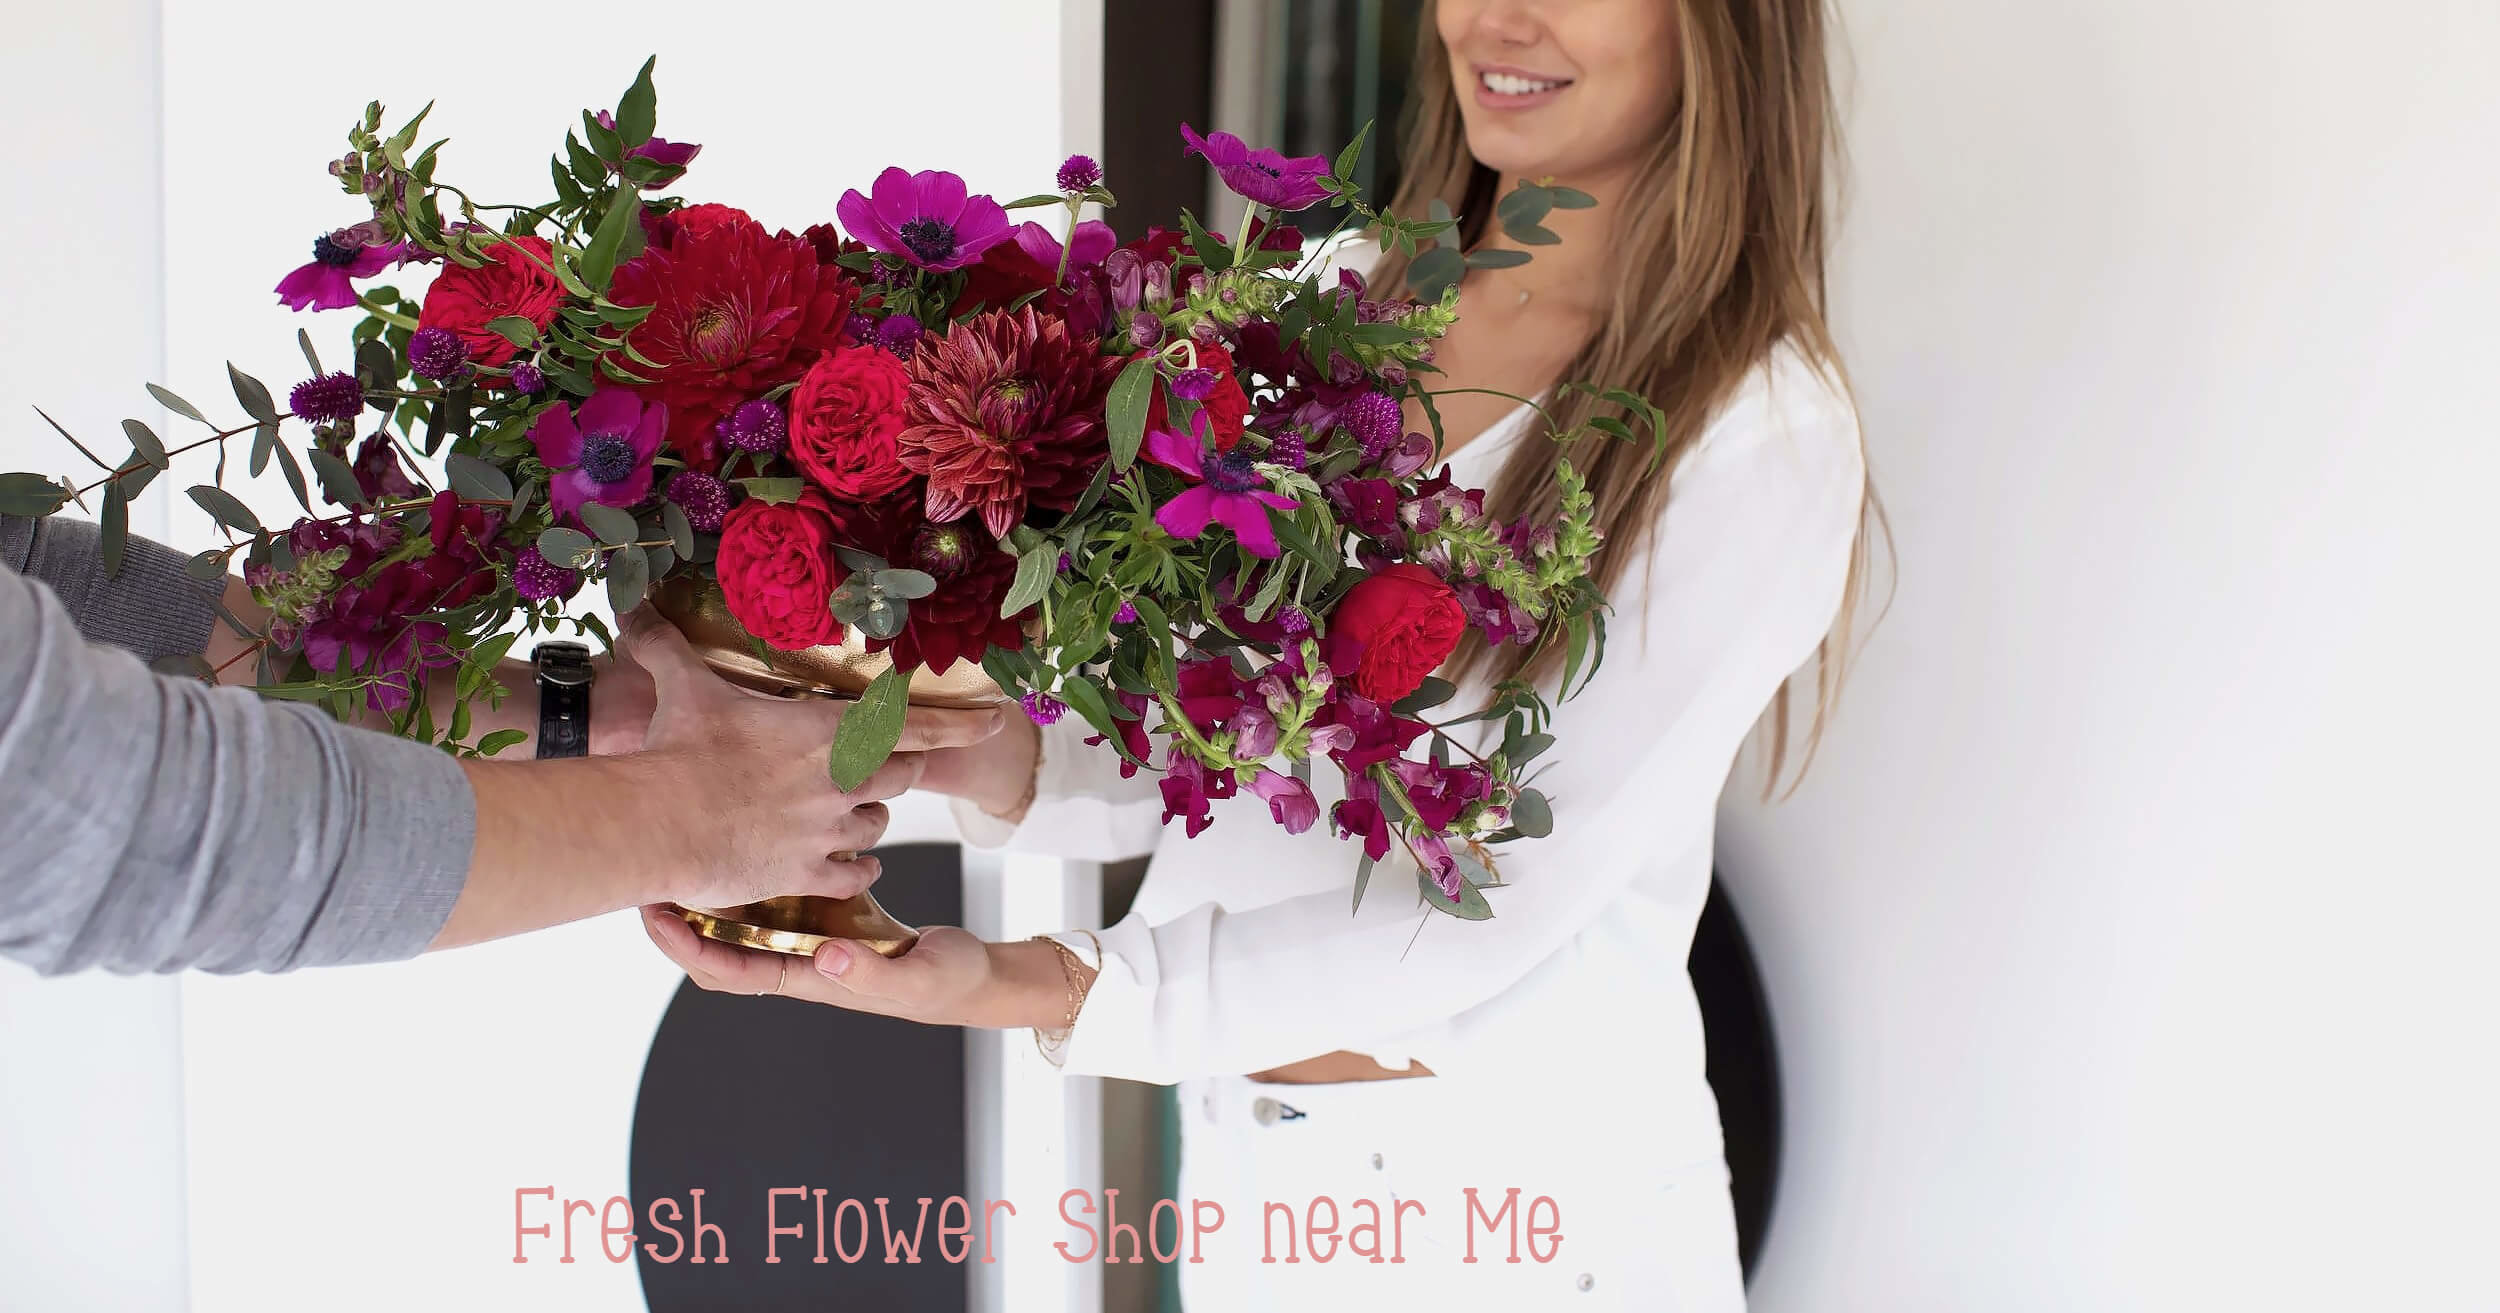 Flower Delivery Dubai Fresh Flower Shop near Me